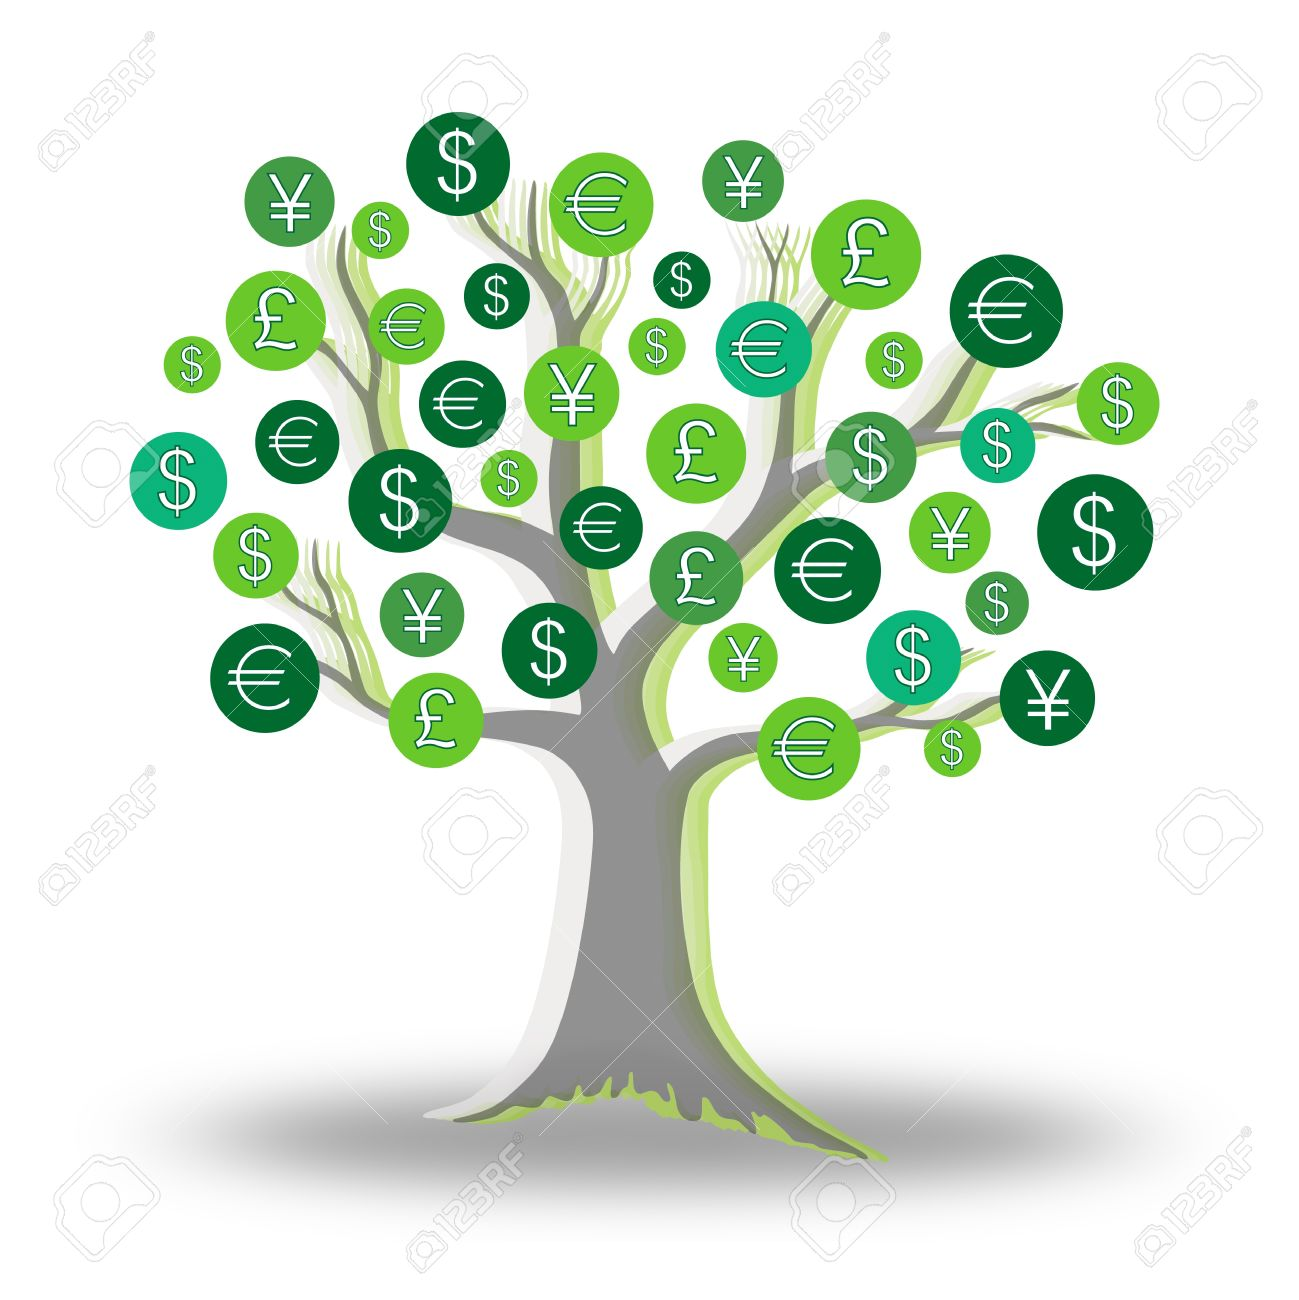 Green tree growing currency with euros, pounds, dollars and yen sign Stock Photo - 11297782